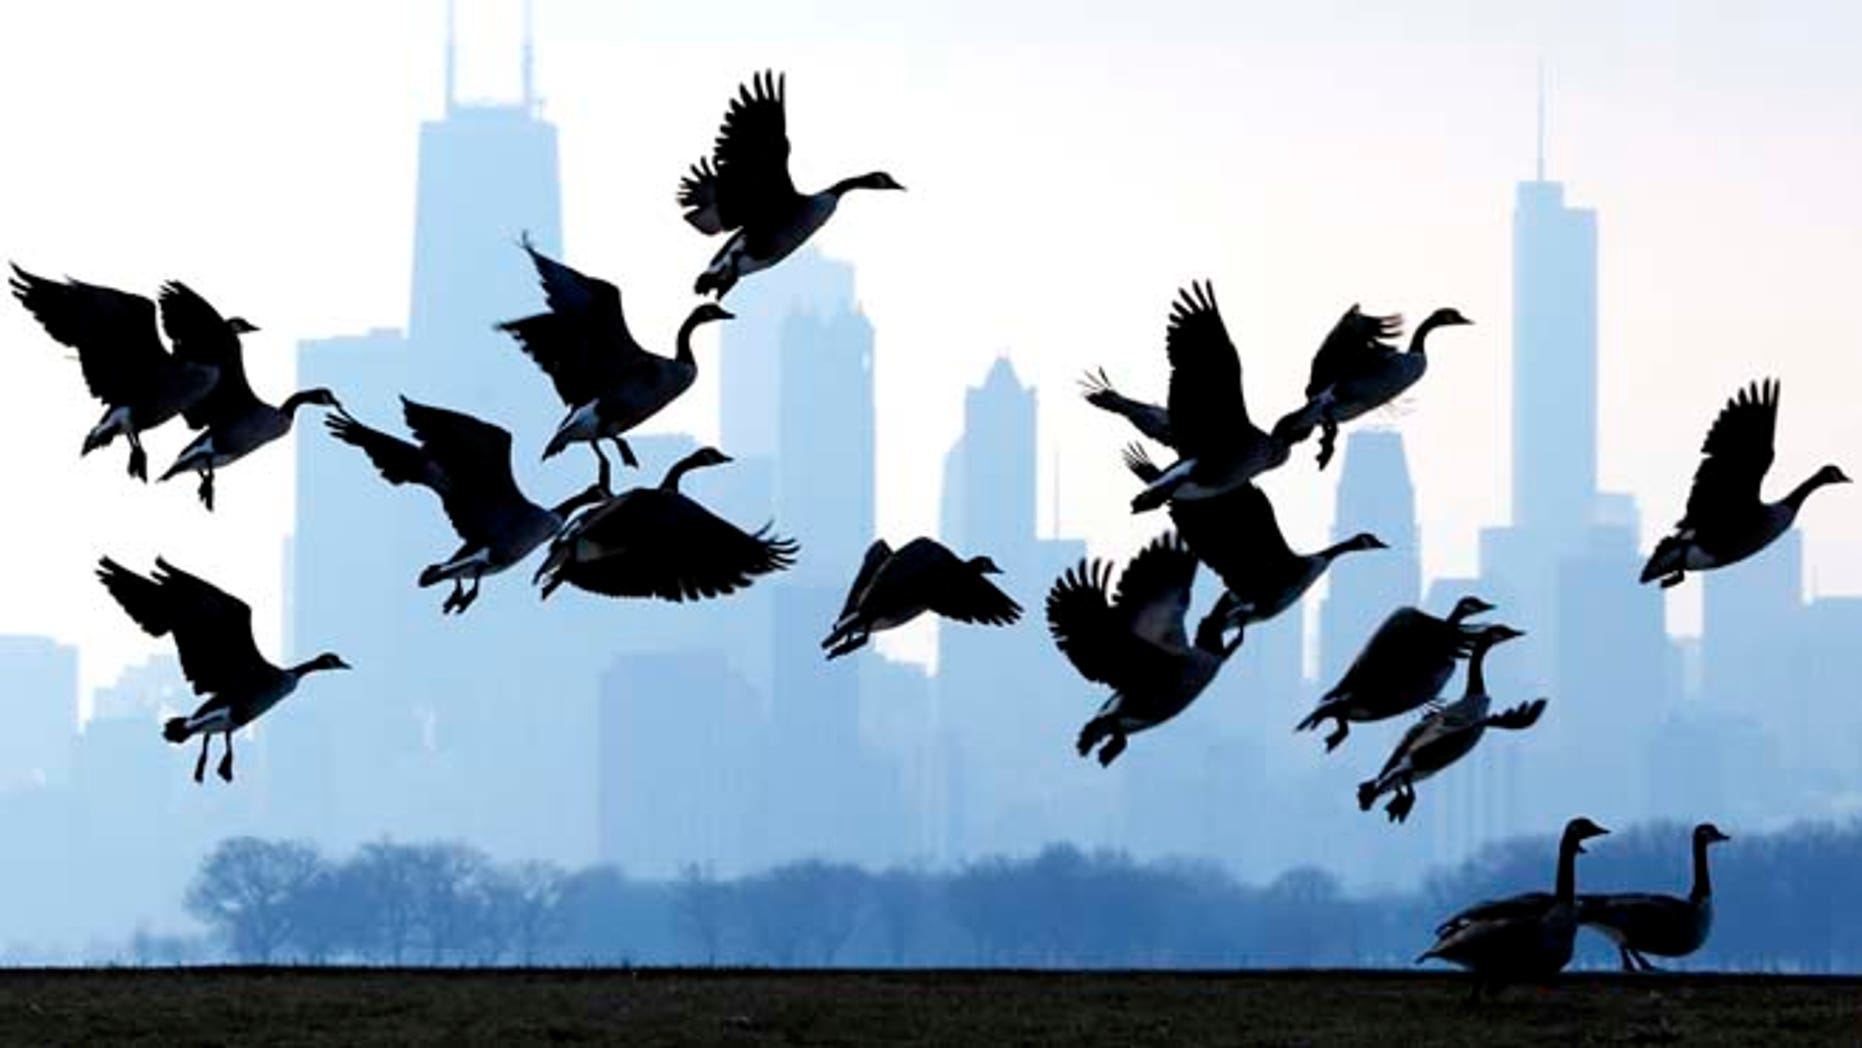 Jan. 6, 2013: This file photo shows geese flying over Lake Michigan at Montrose Beach in Chicago. The cost of six geese-a-laying spiked considerably this year, while most of the items in the carol The Twelve Days of Christmas, saw little to no increase, according to the 31st annual PNC Wealth Management Christmas Price Index. Six geese-a-laying now costs $360 versus $210 last year.